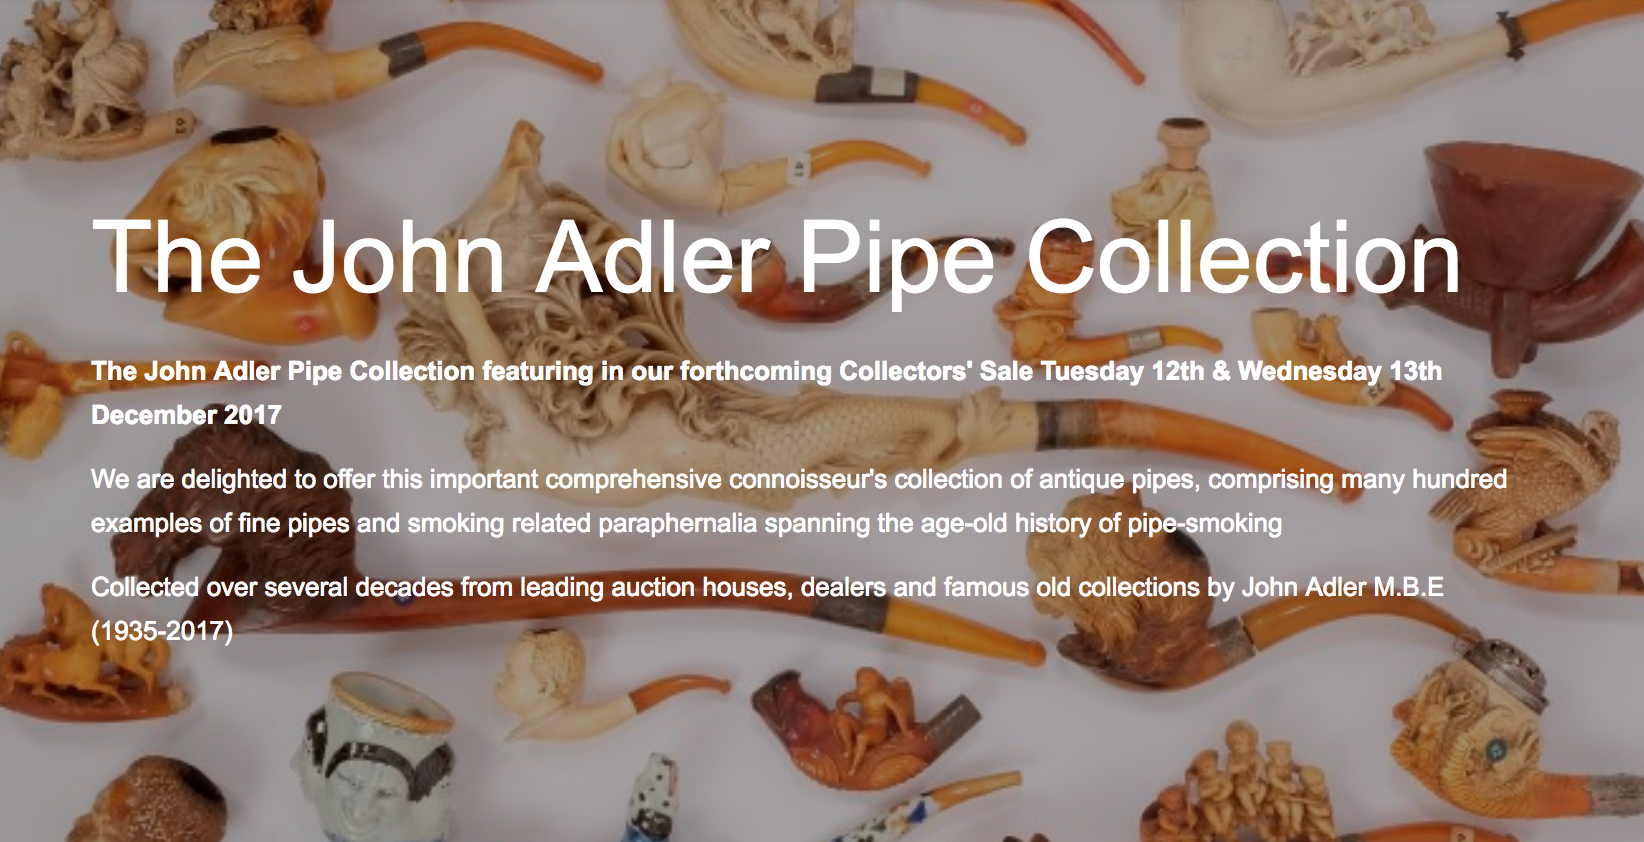 John Adler Pipe Collection